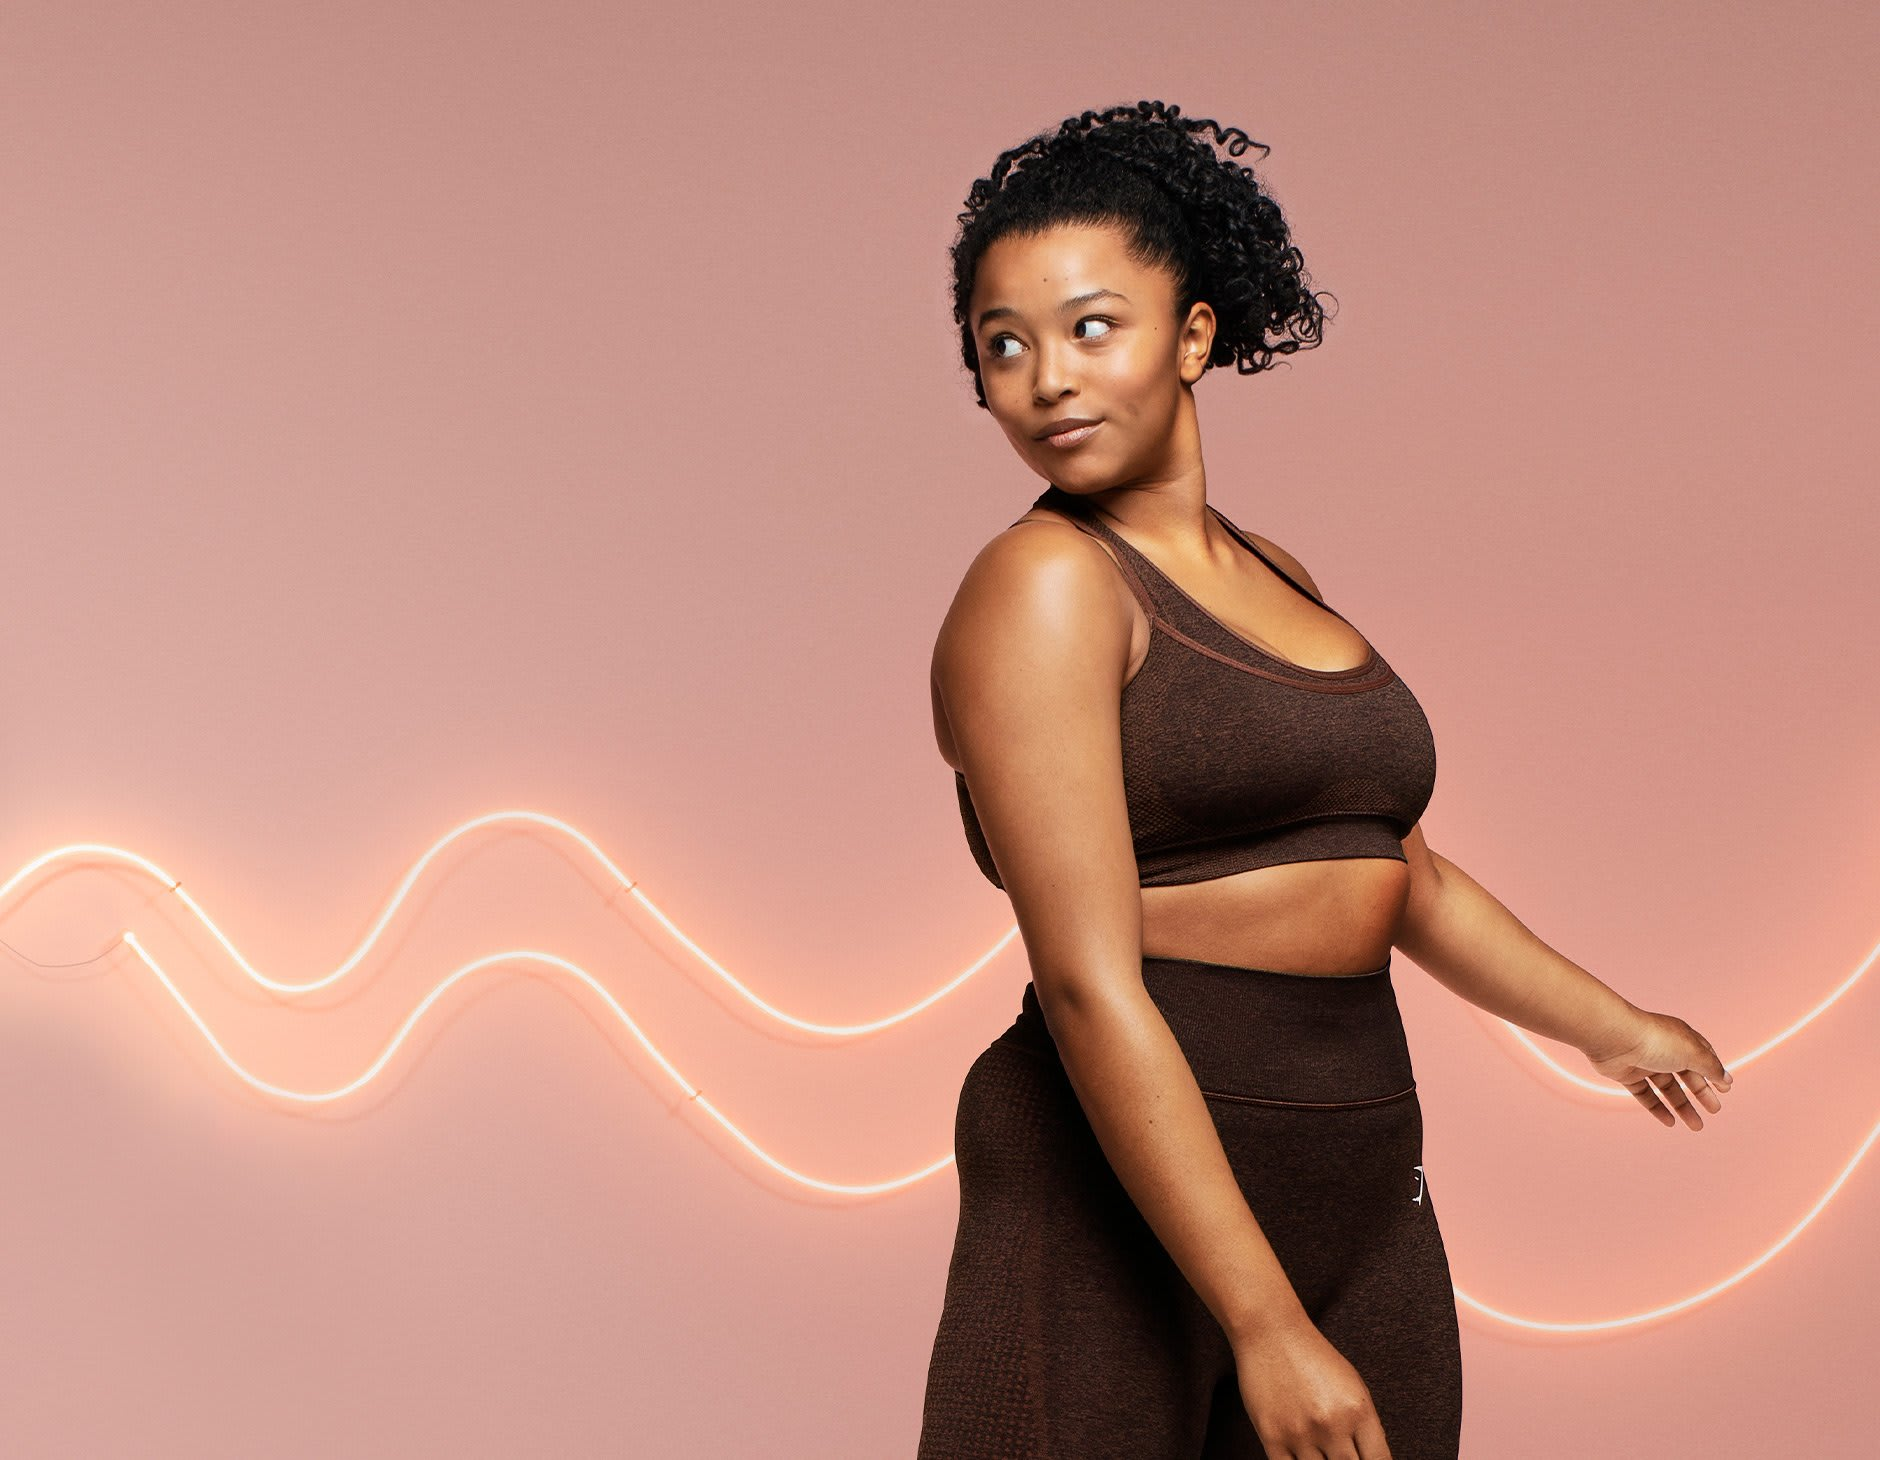 Female model posing in the new Vital Rise Sports bra and leggings in cherry brown marl against a pink background with neon lights.